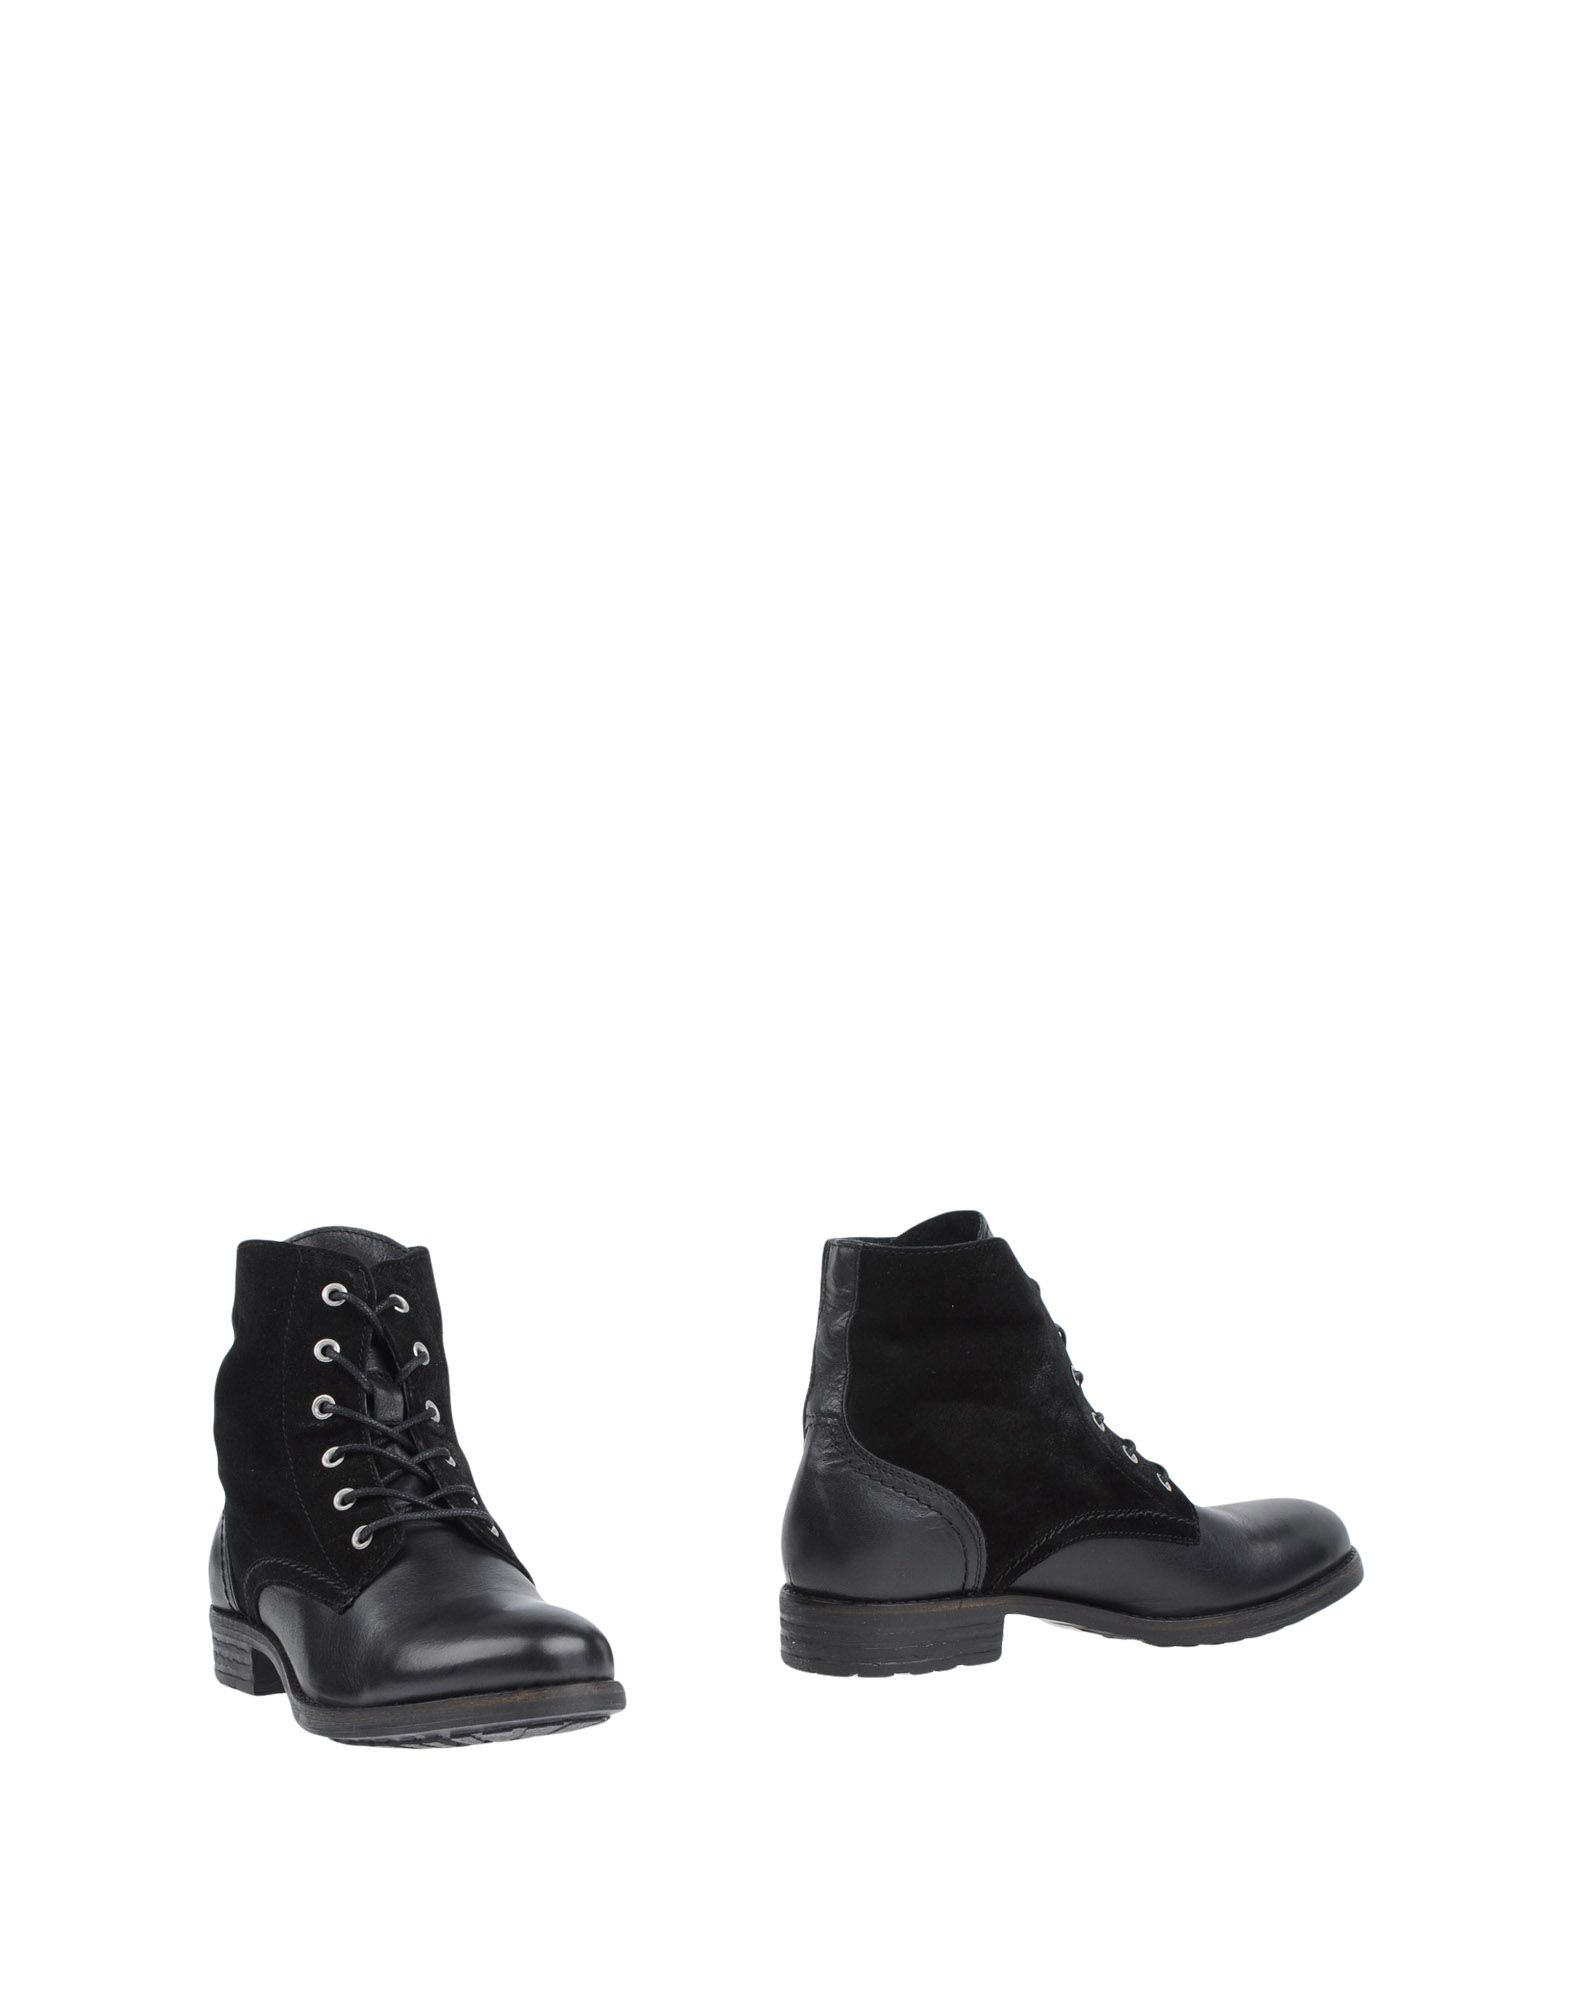 Bottine Pieces Femme - Bottines Pieces sur